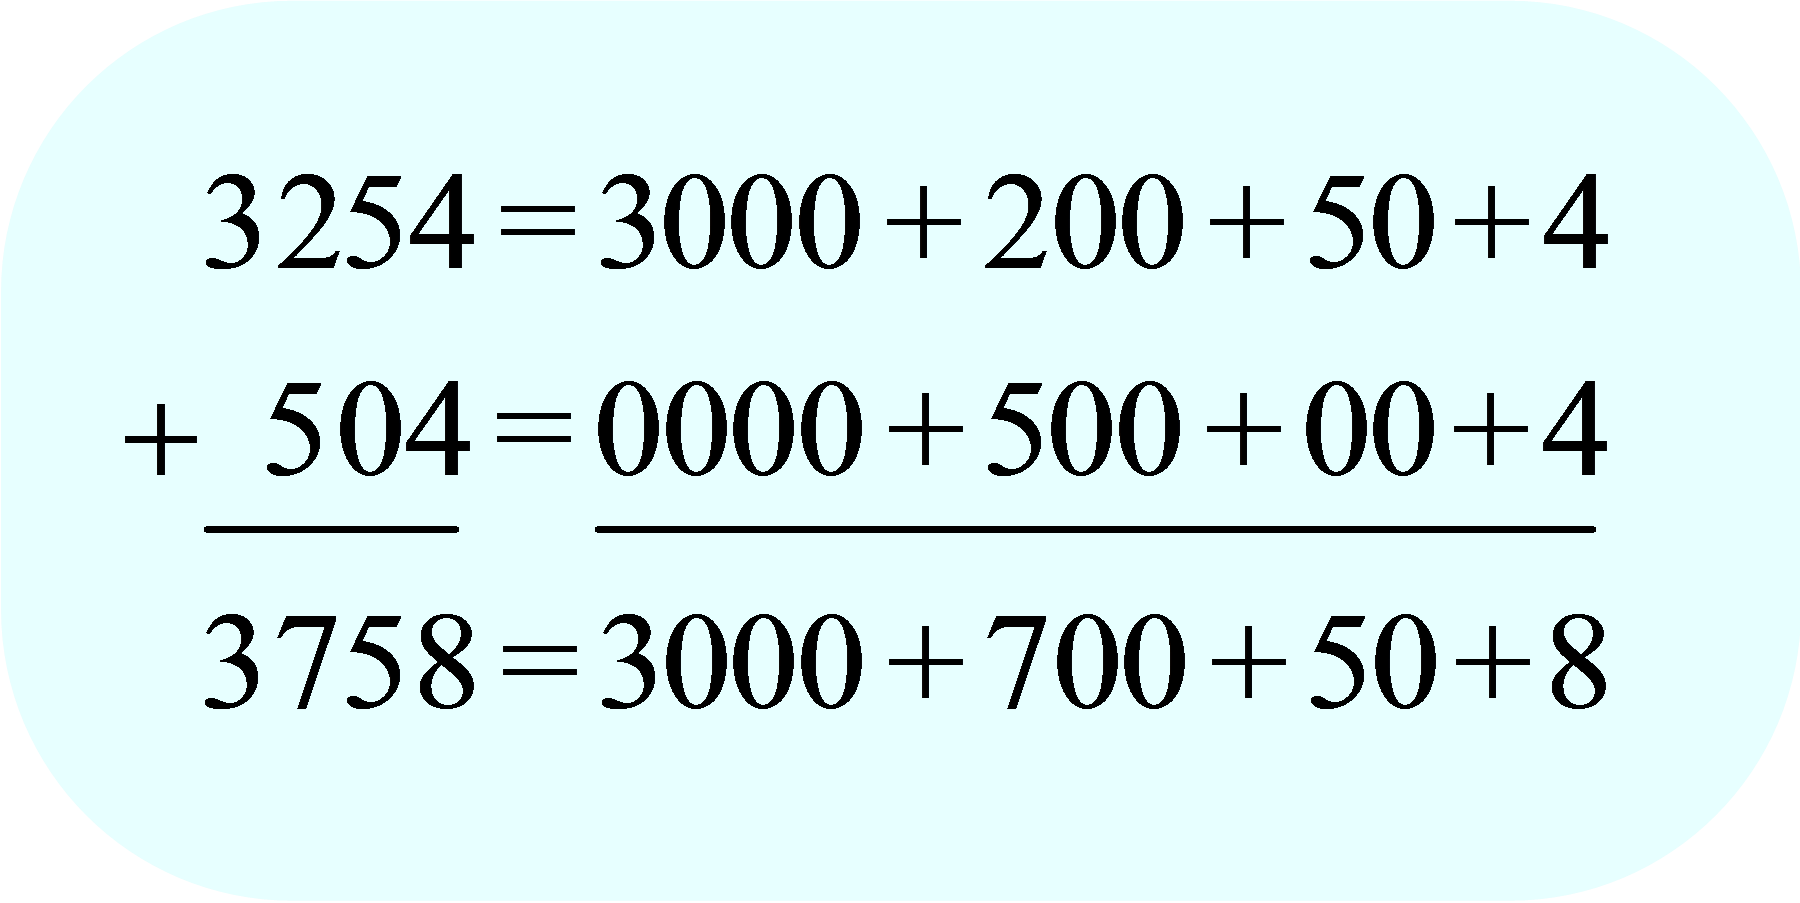 Add Whole Numbers in expanded form